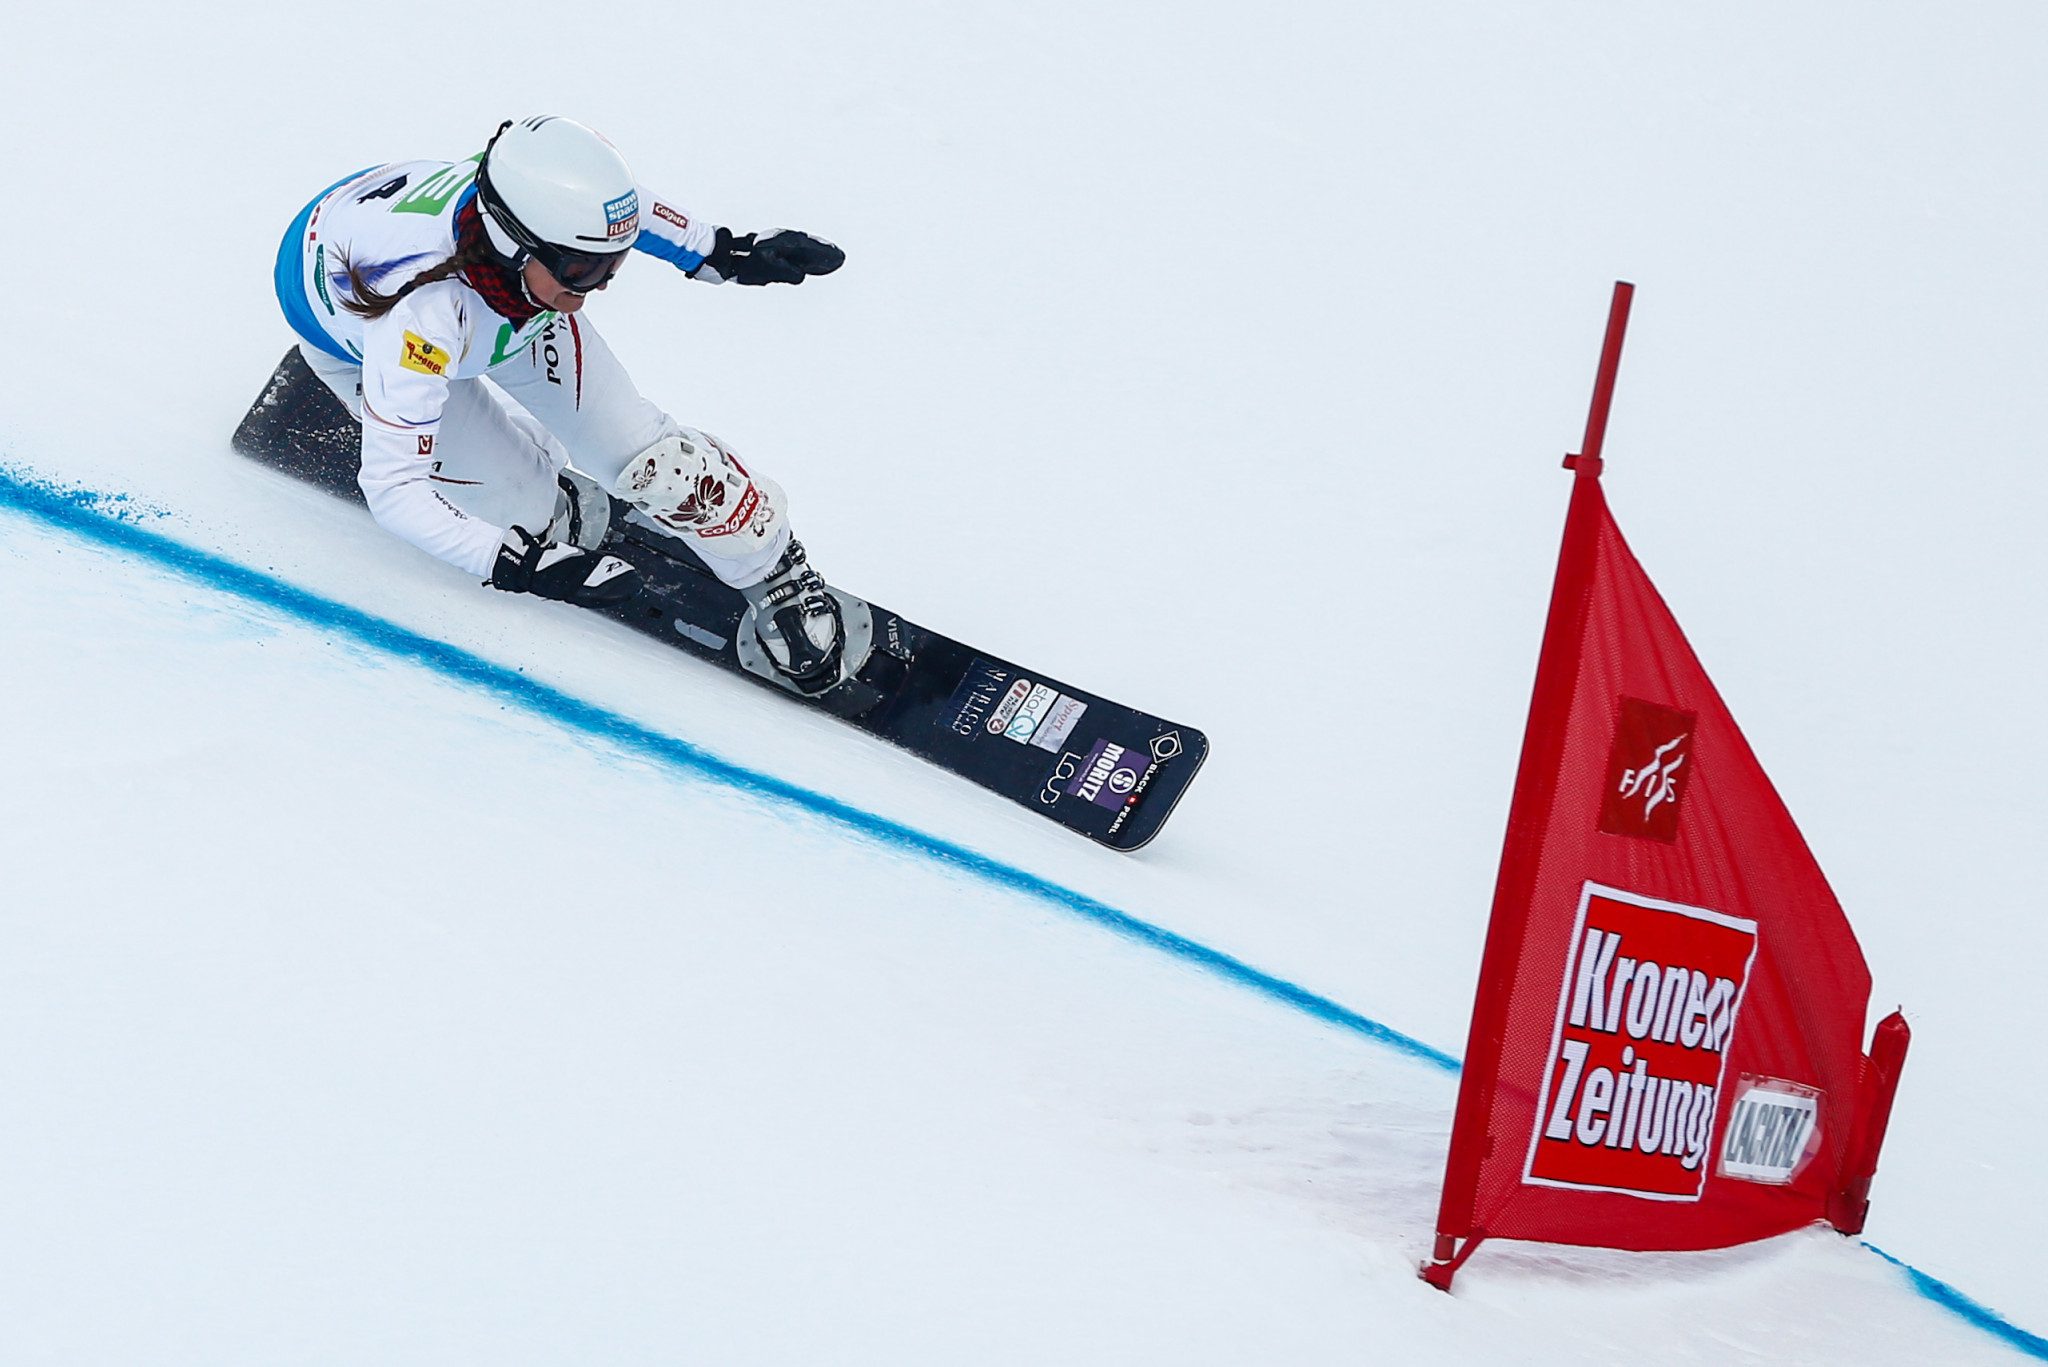 Austria's Claudia Riegler triumphed at the age of 45 in Bad Gastein ©Getty Images